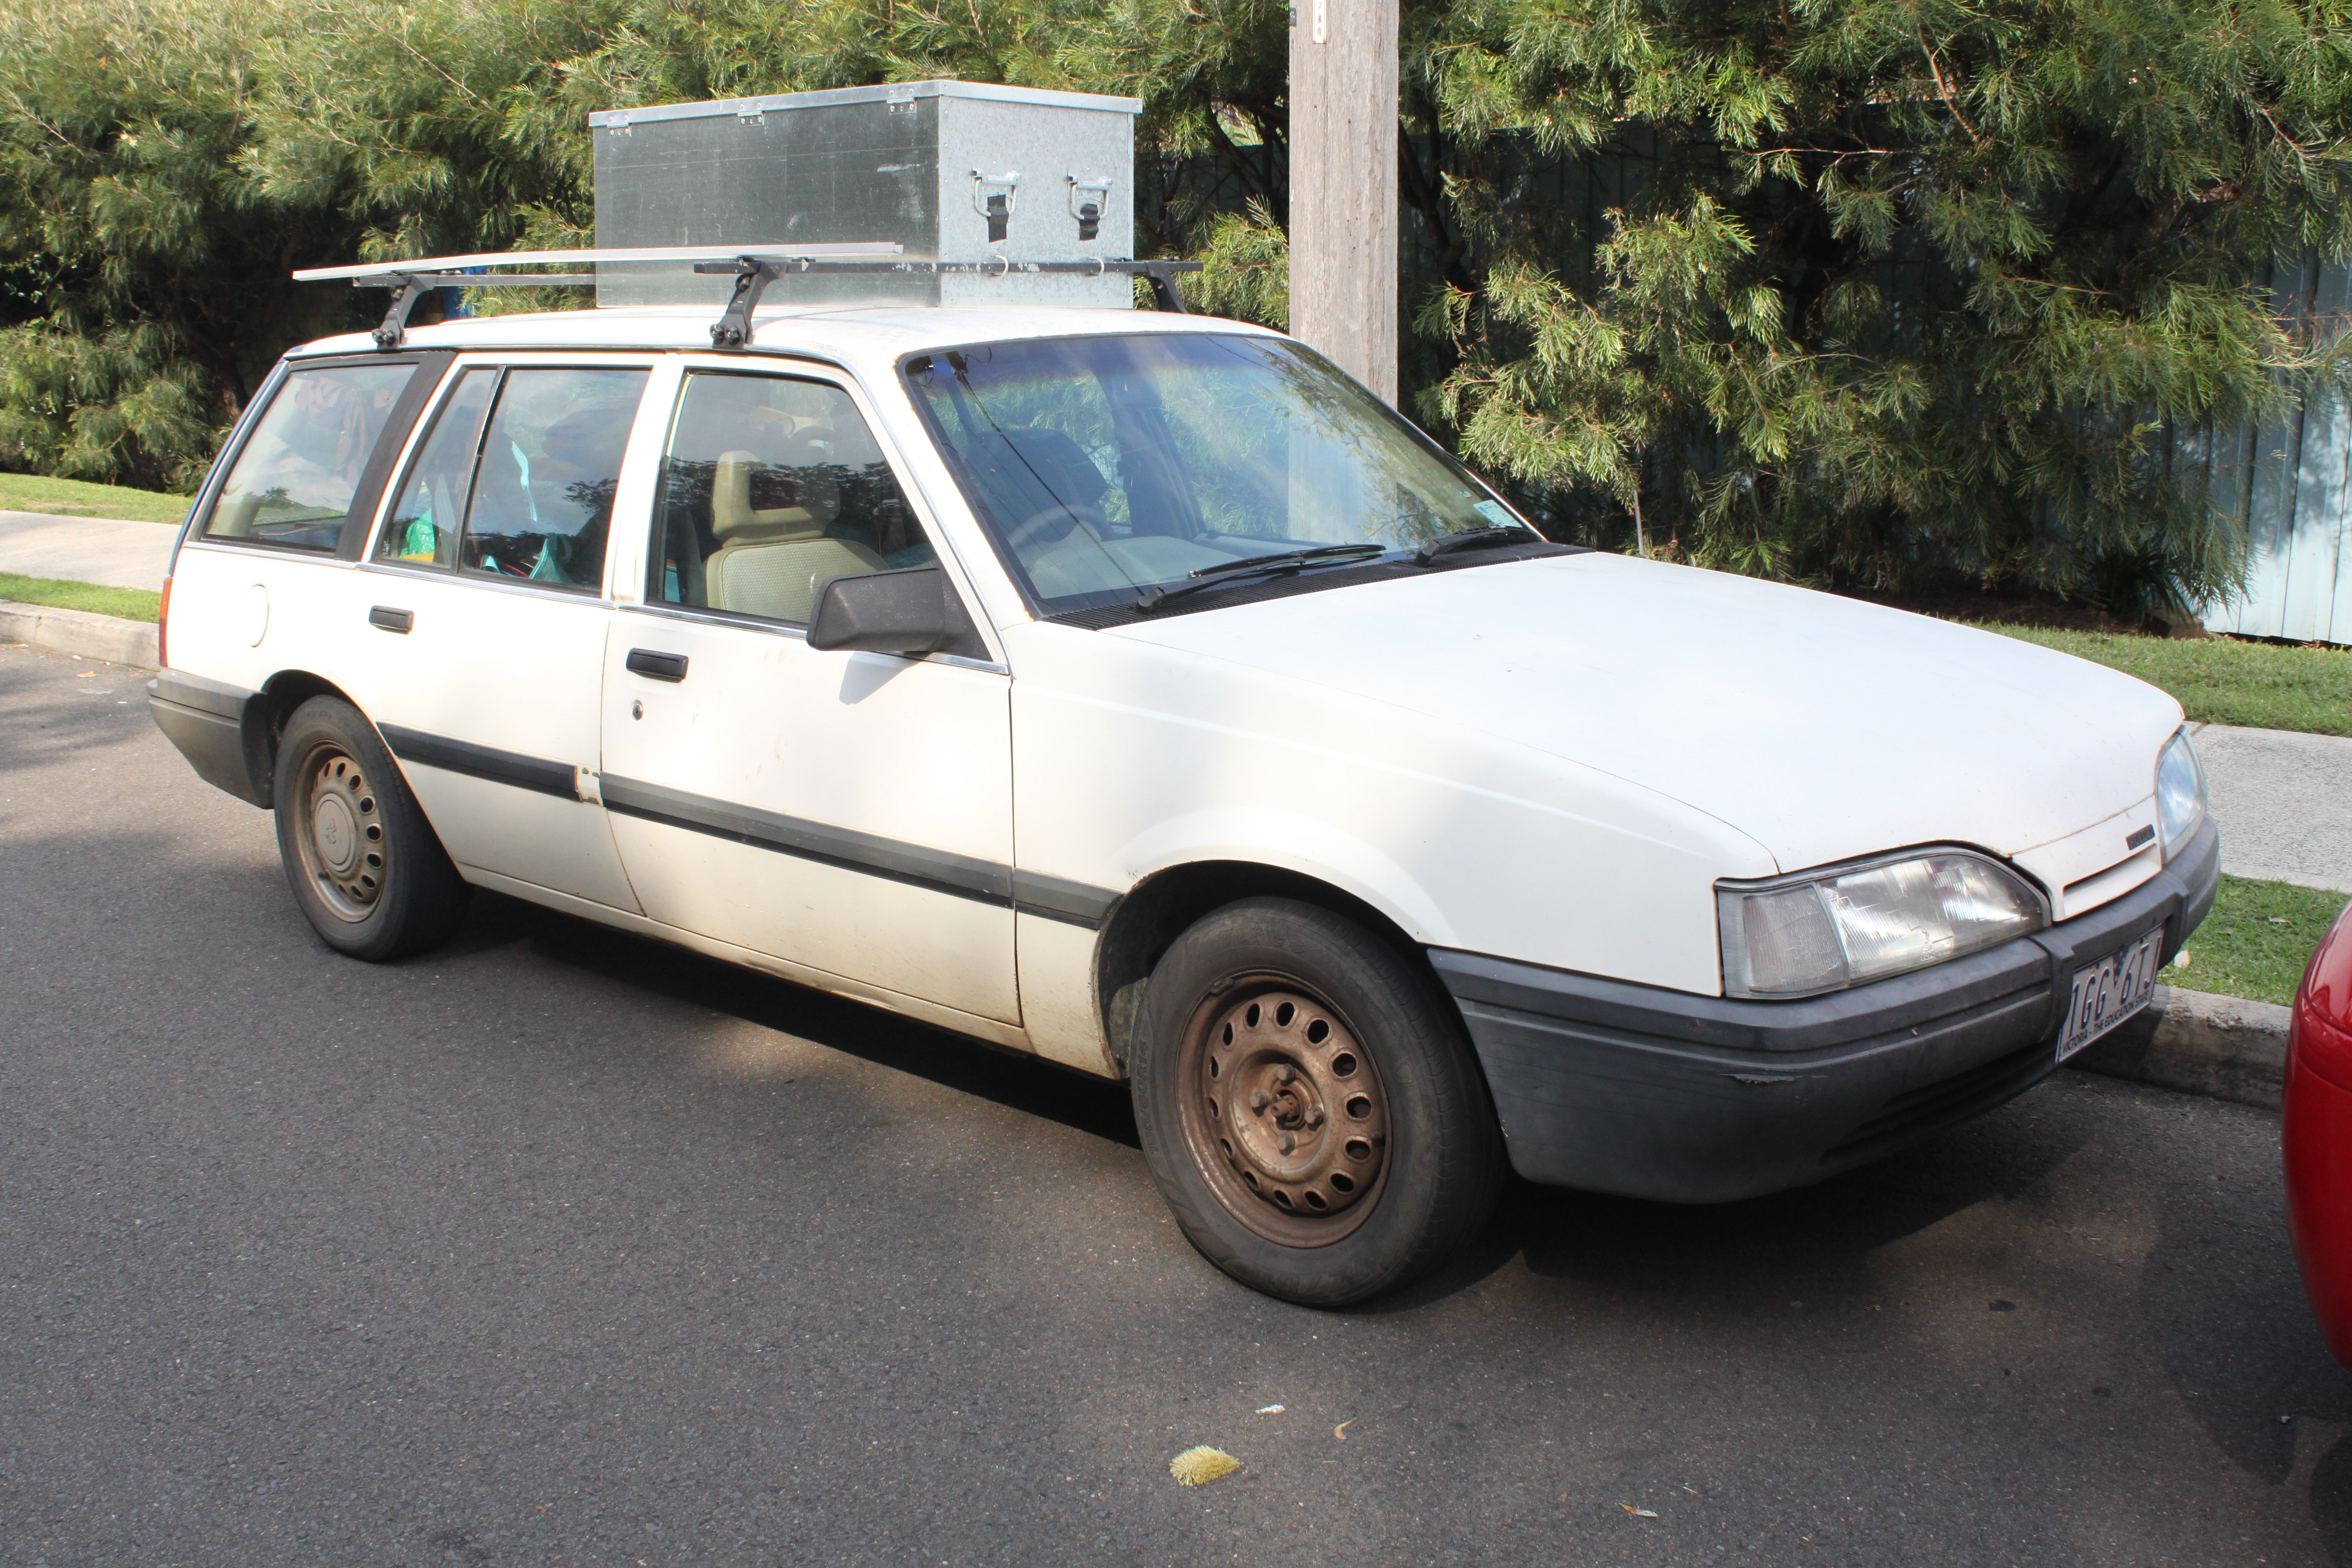 File:1988 Holden Camira (JE) SL station wagon (25951206474).jpg ...